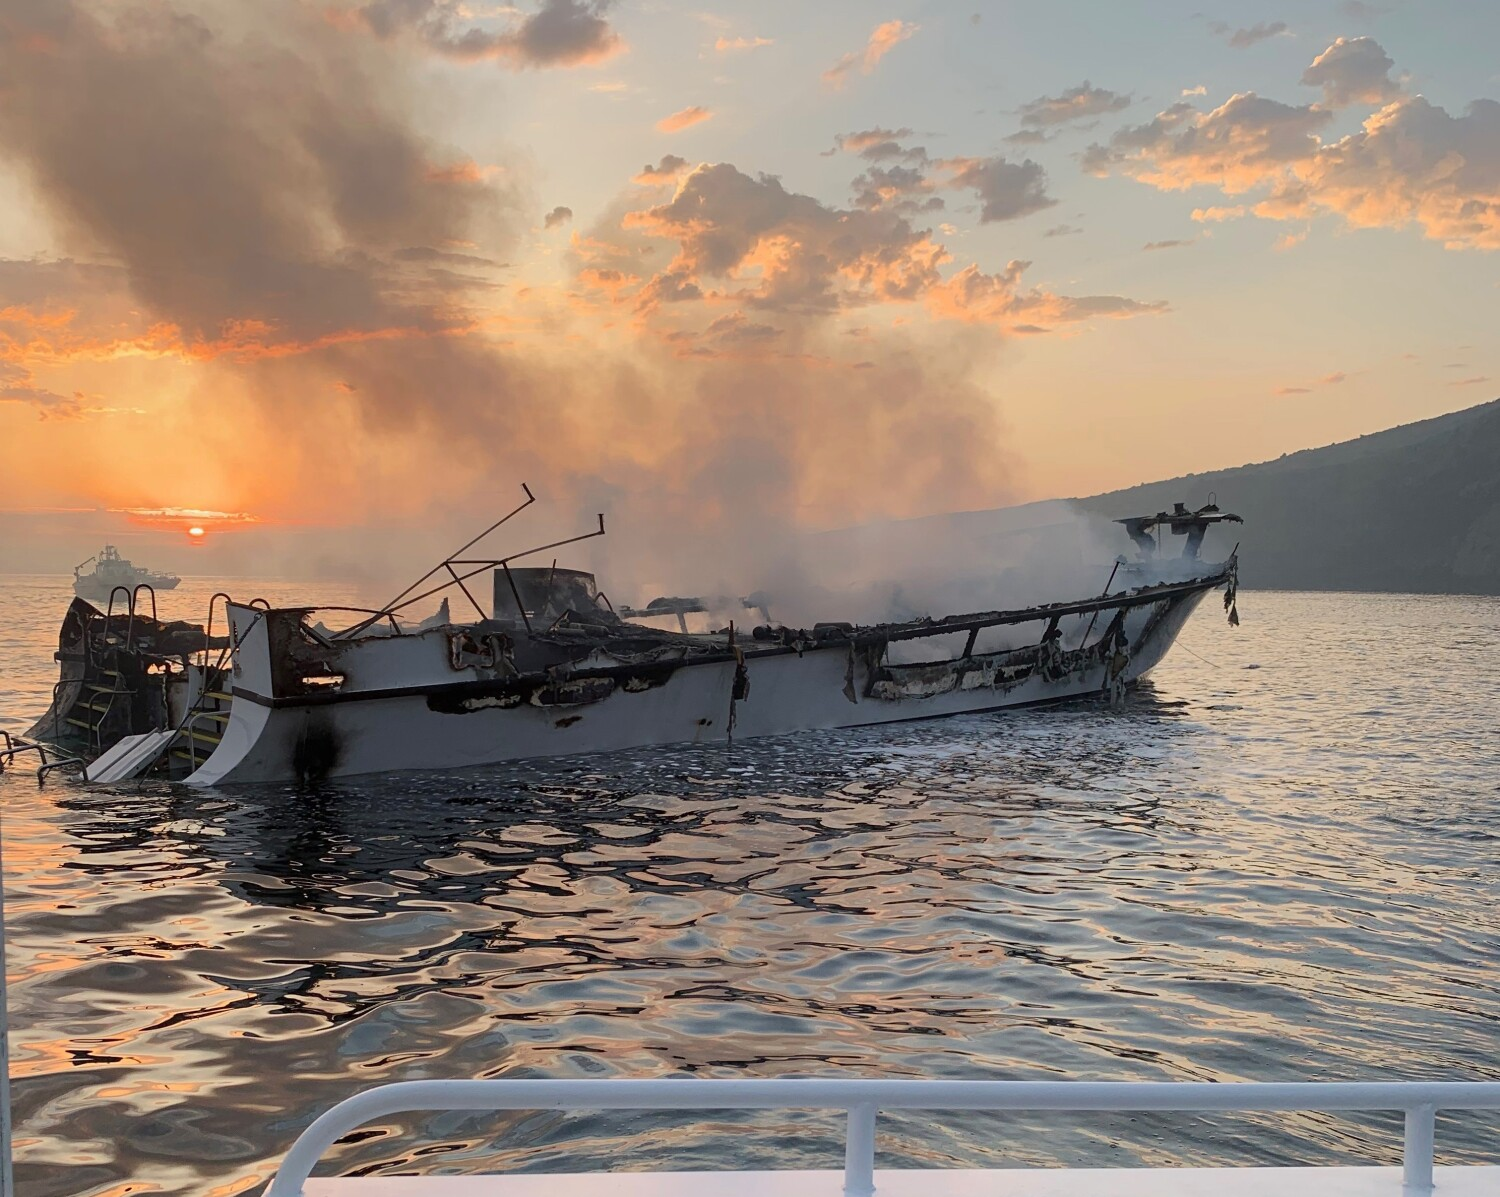 Deadly boat fire: Four families of victims file suit against Conception owners